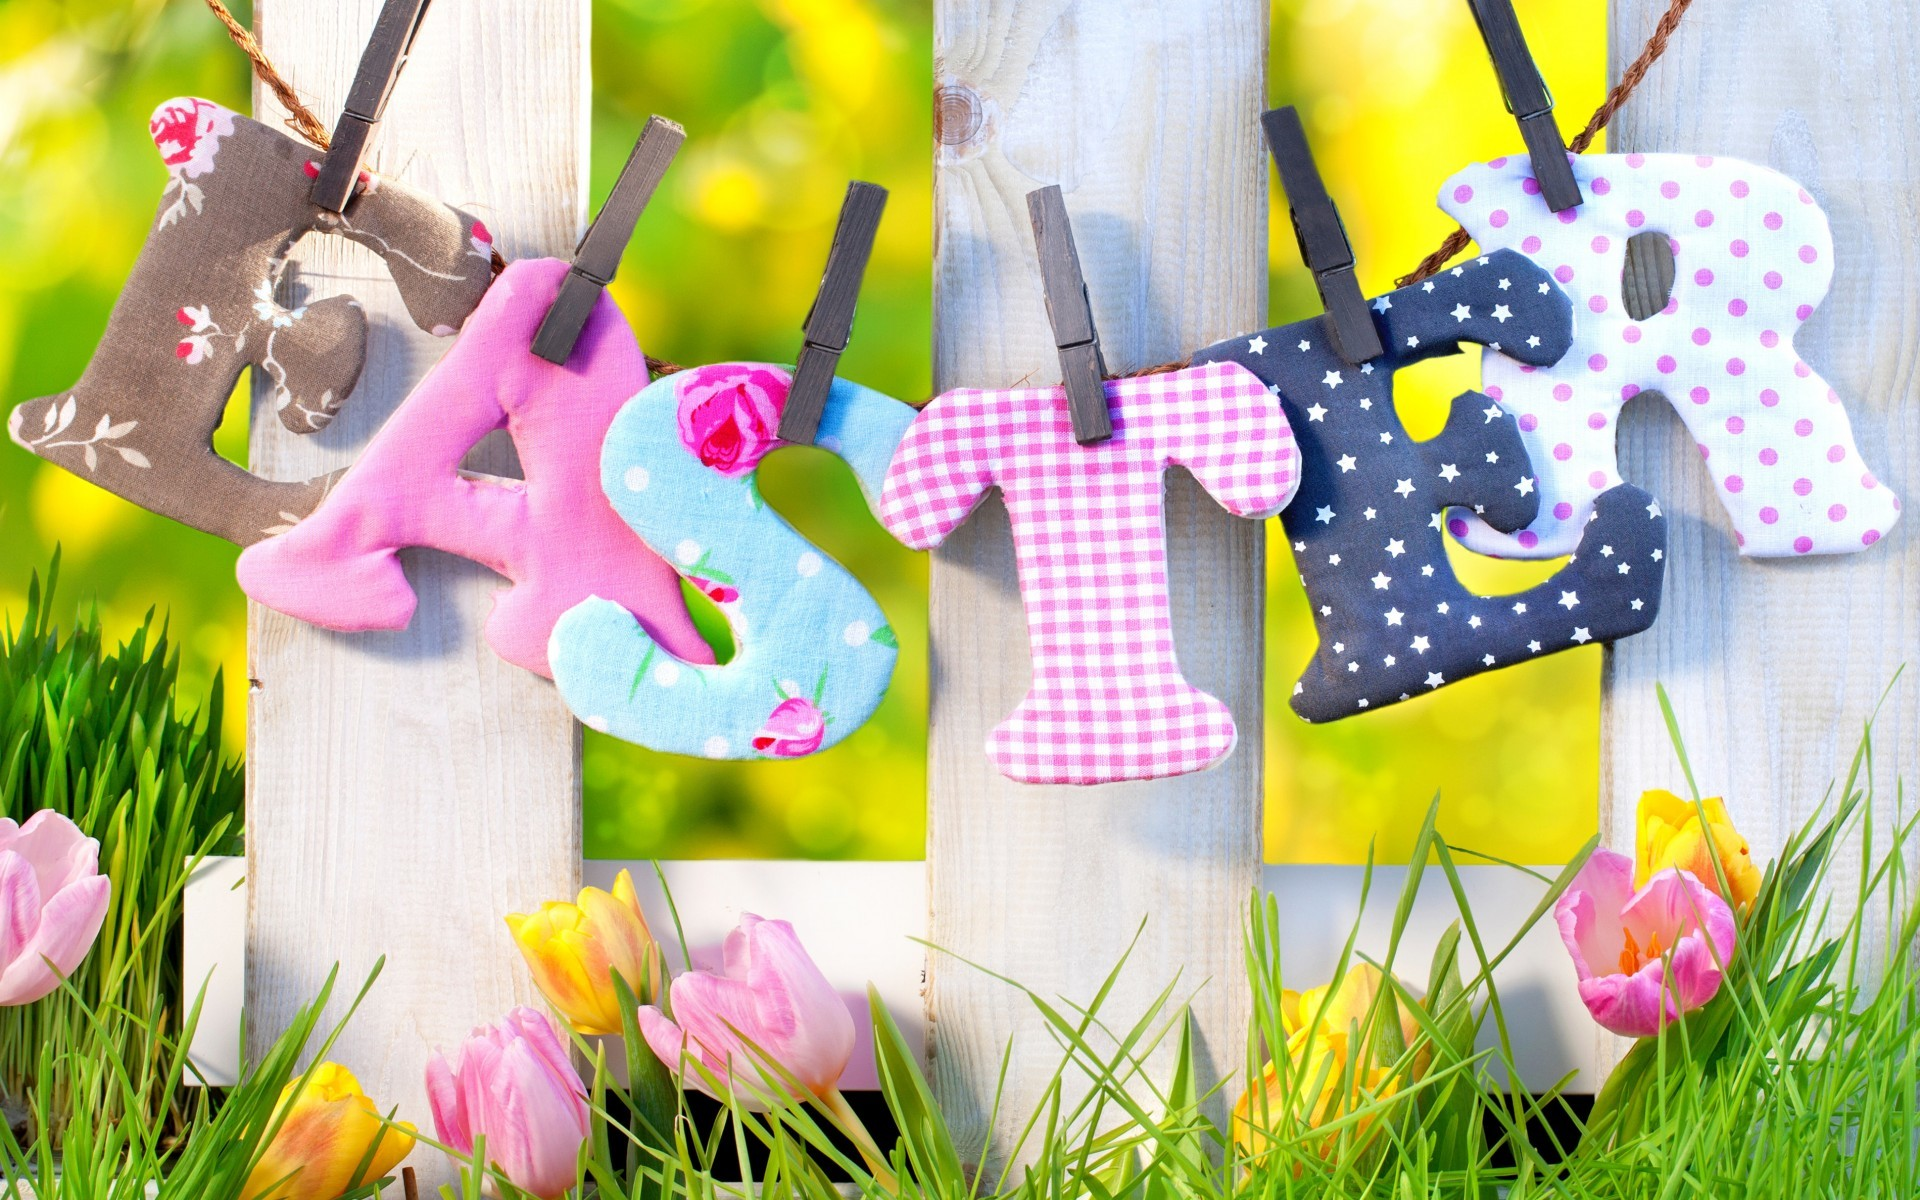 Free Download Happy Easter Wallpapers 70 Images 1920x1200 For